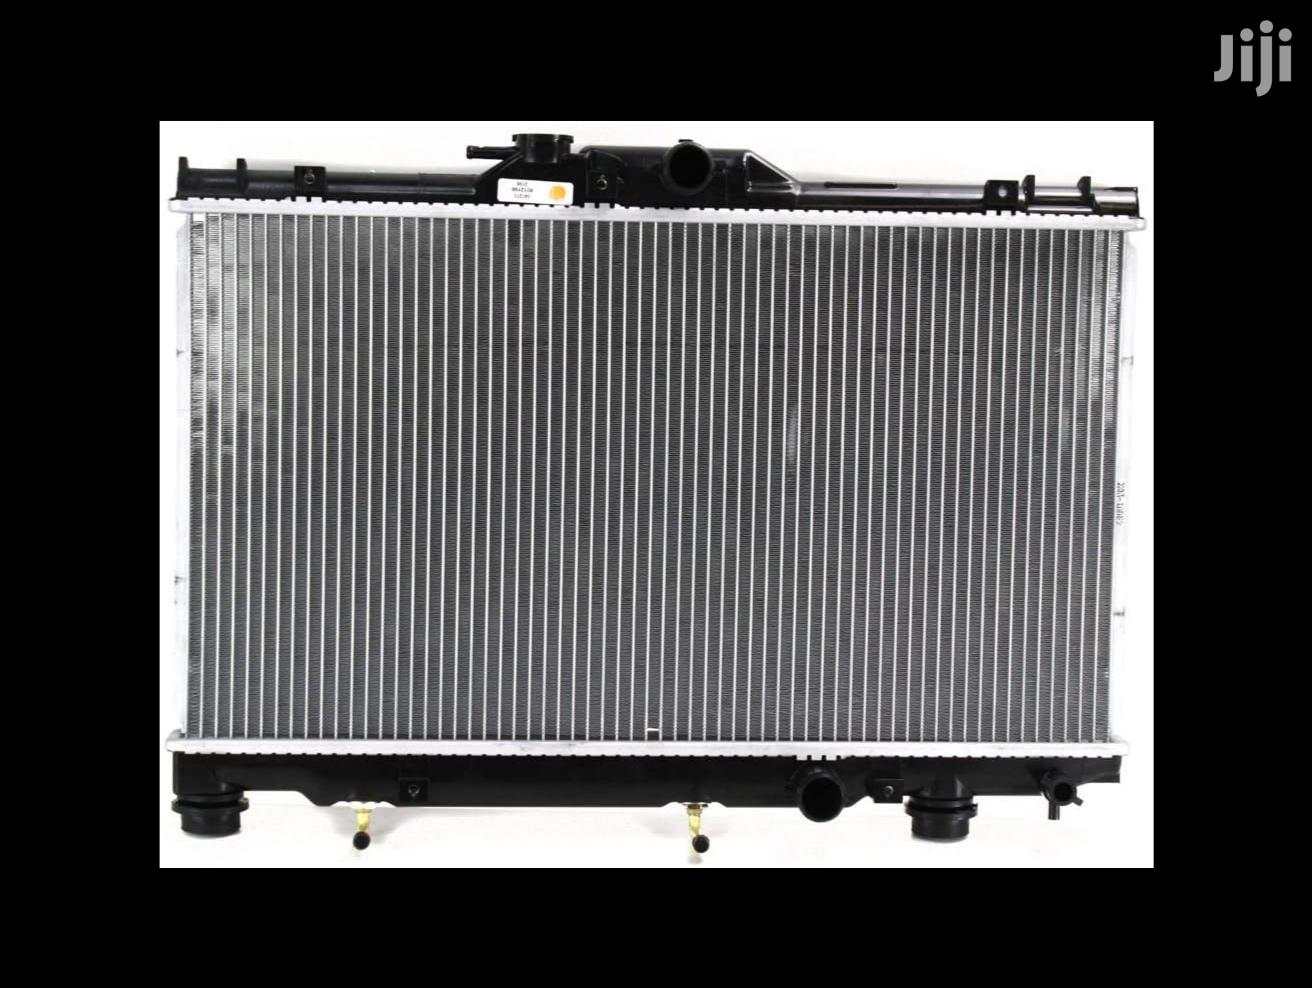 A New Radiator For Toyota Fortuna Diesel Engine On Sale